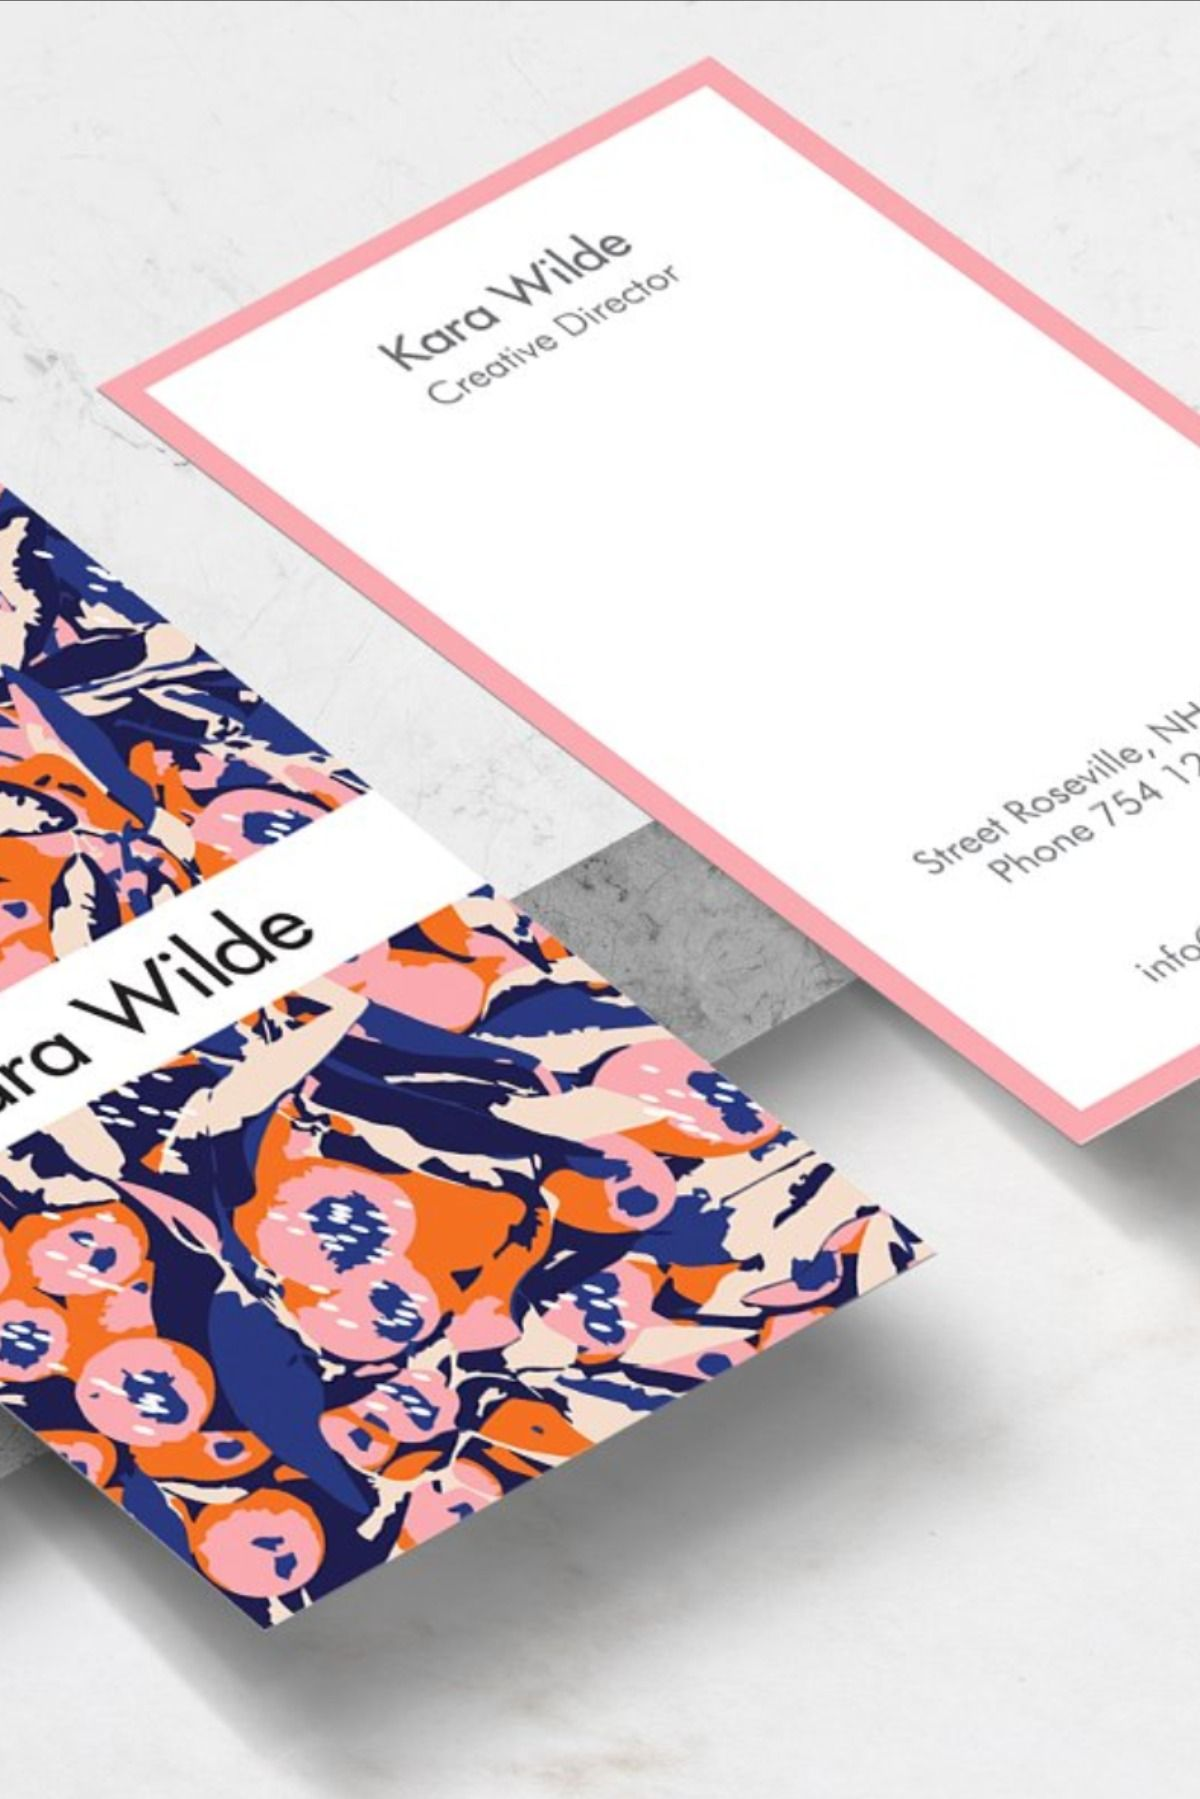 Vanity Business Card Template Business Card Template Business Card Design Card Design